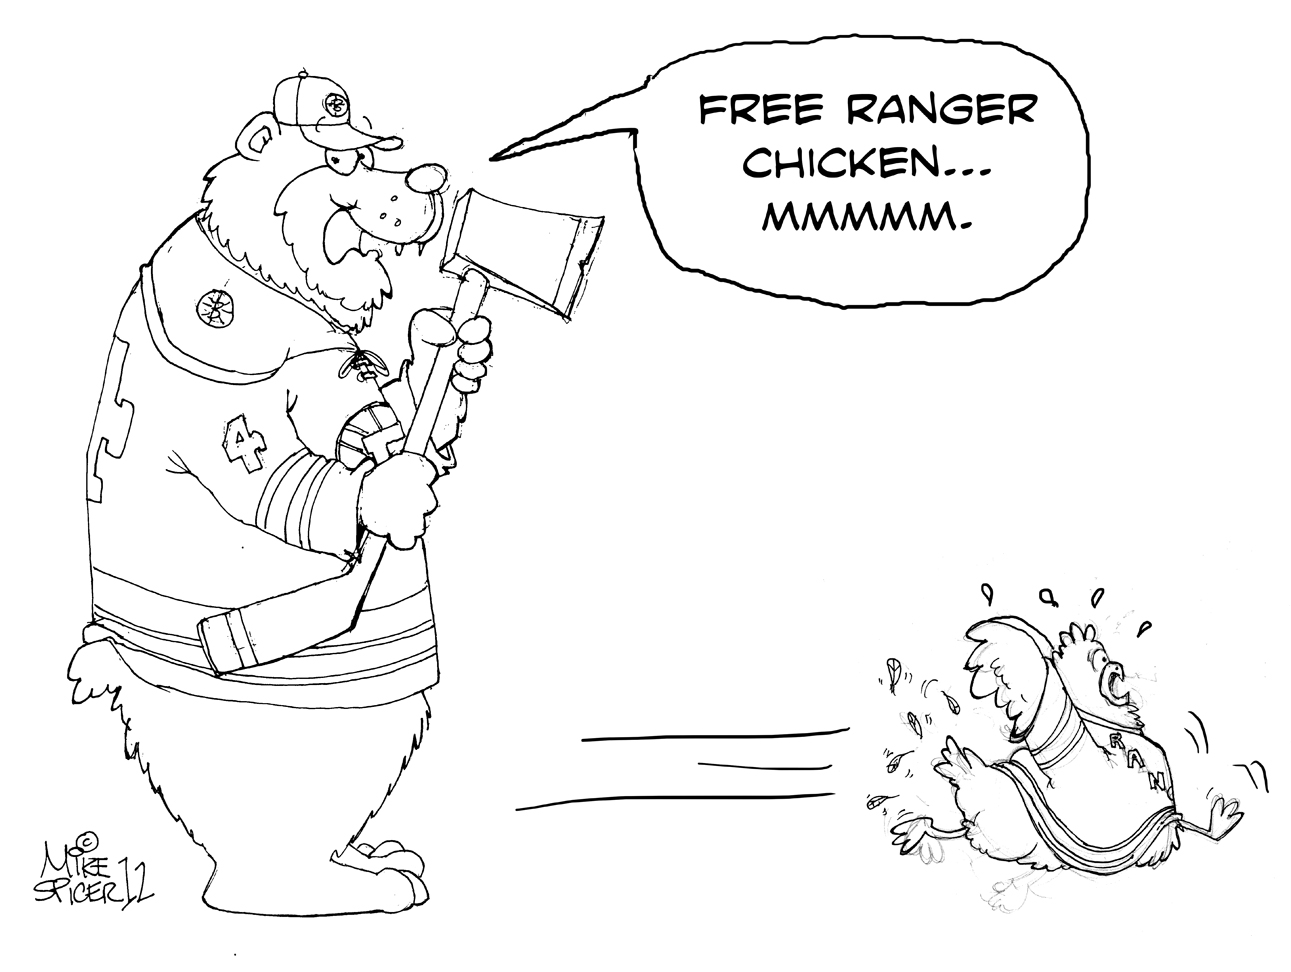 bruins coloring pages   Mike Spicer Cartoonist / Caricaturist.: Bruins vs. NYR ...